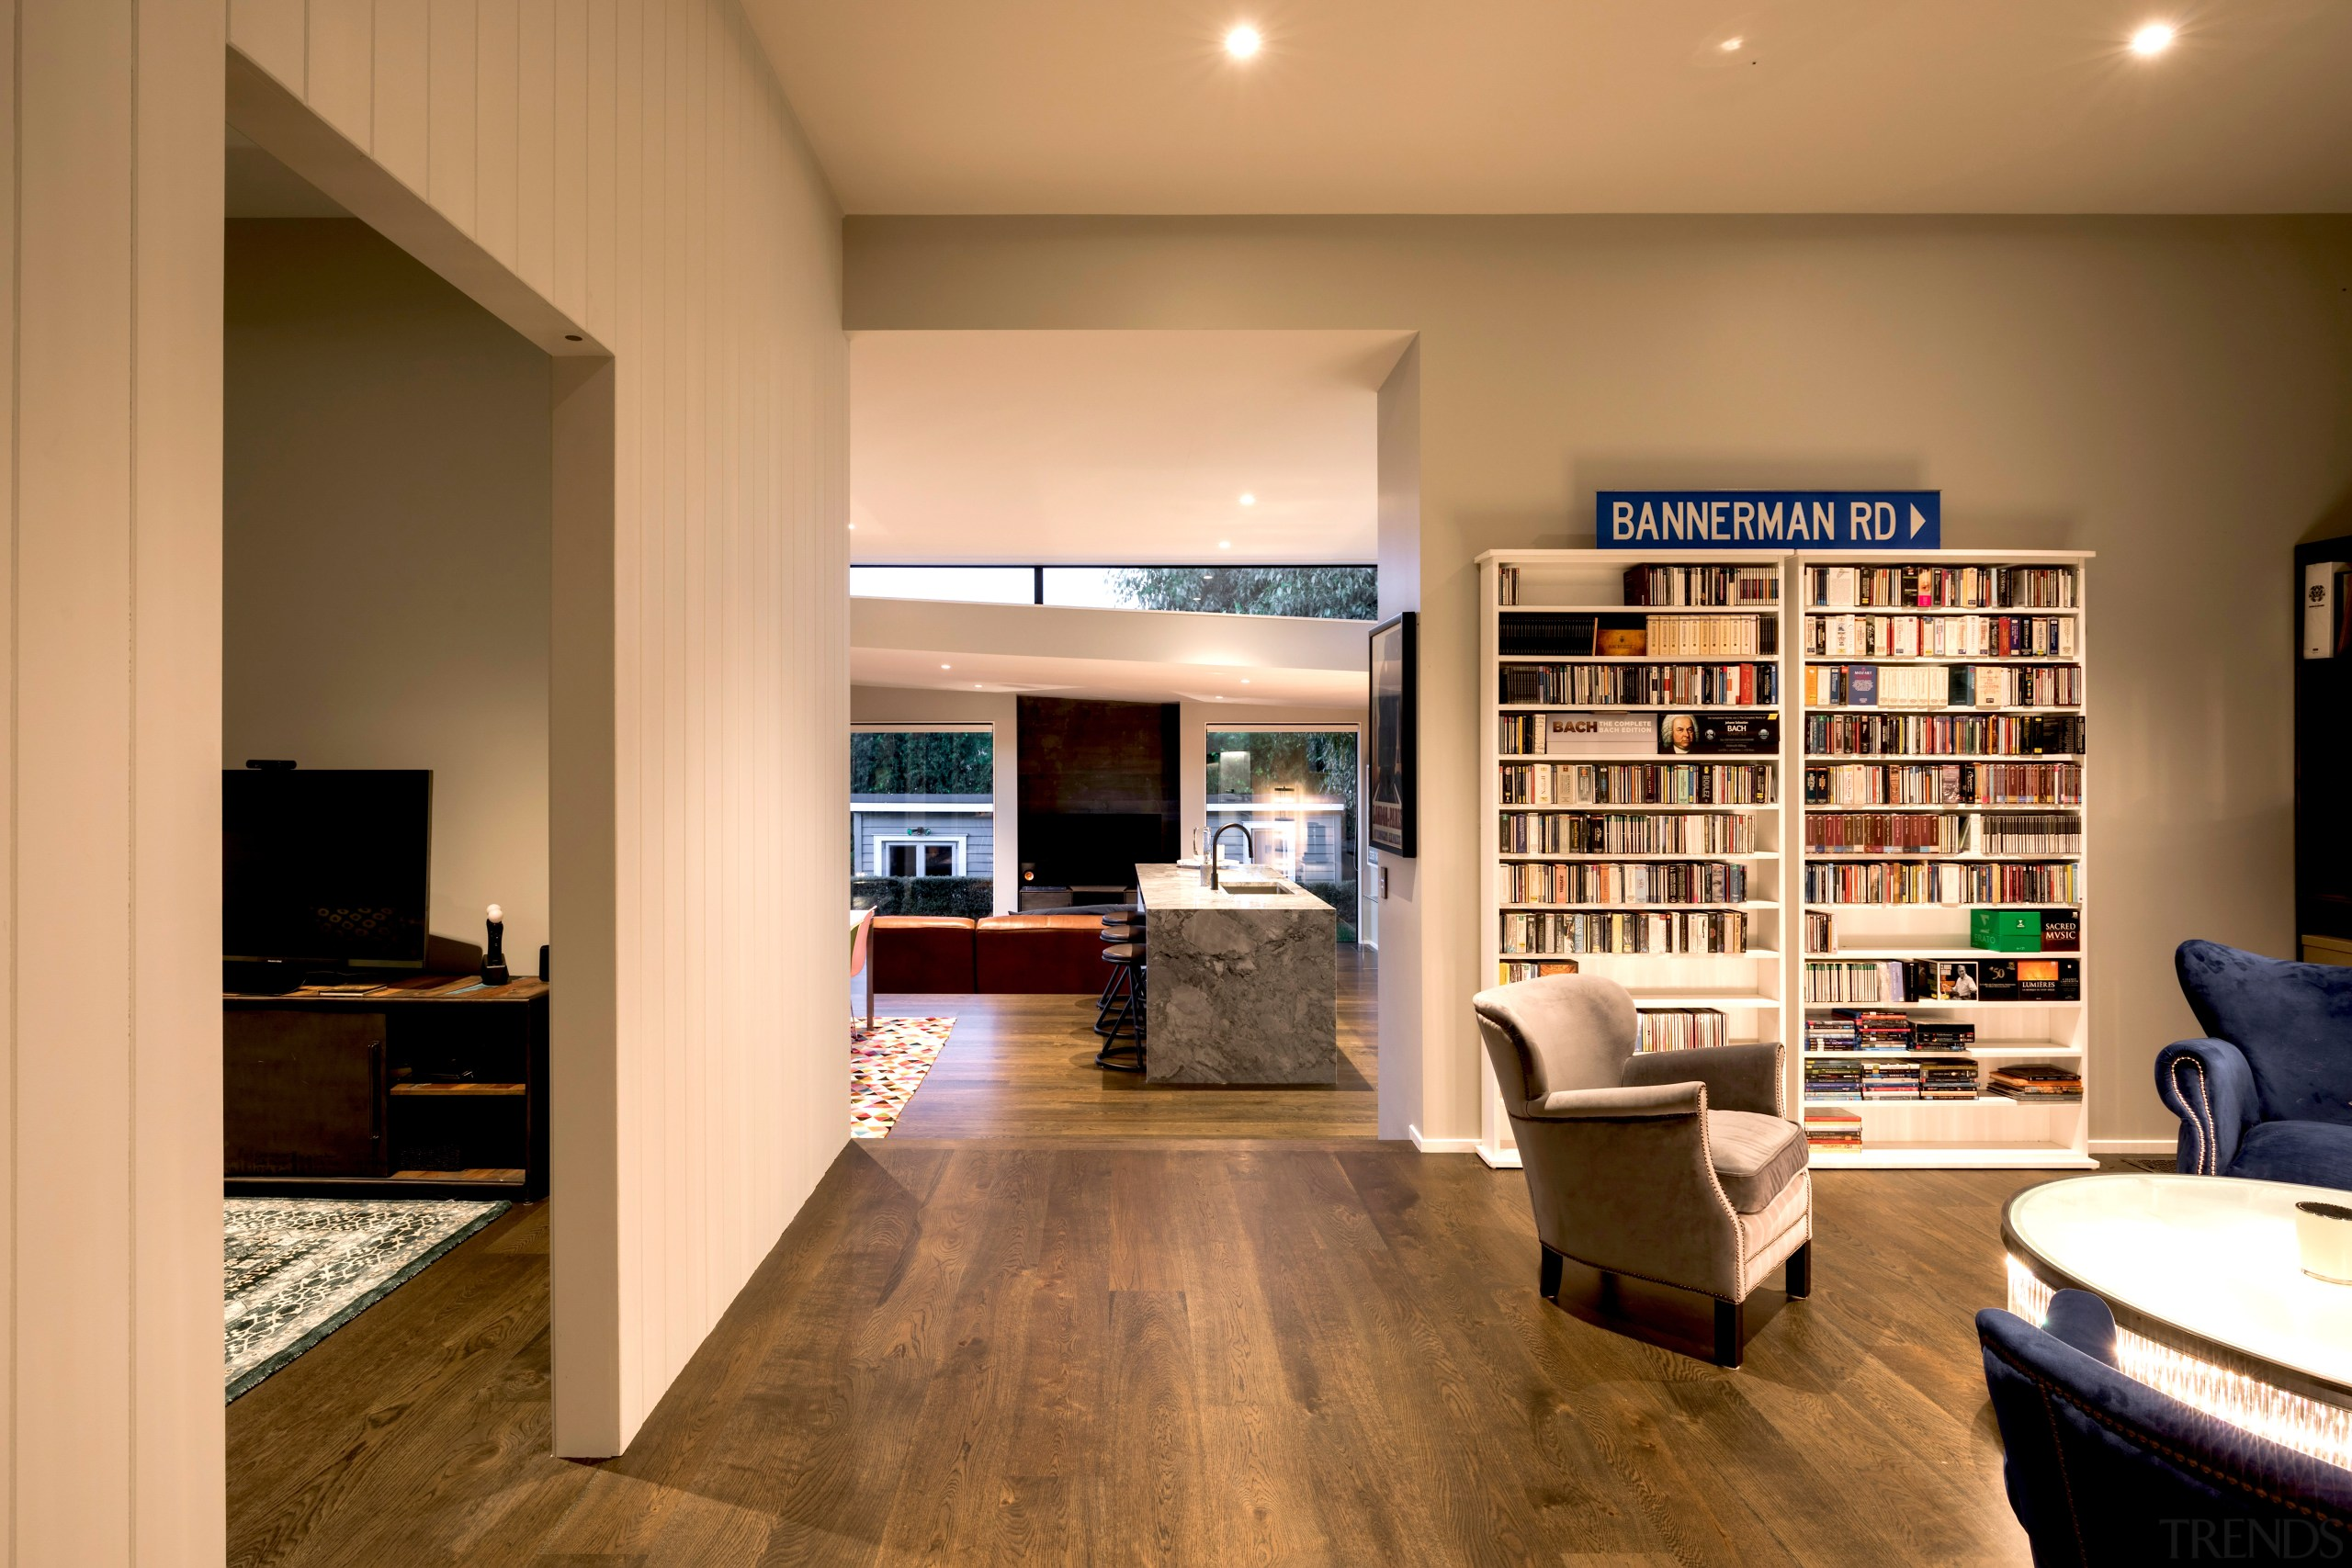 Modern extension celebrates contrast with existing traditional villa architecture, building, cabinetry, ceiling, floor, flooring, furniture, hardwood, home, house, interior design, laminate flooring, living room, property, real estate, room, shelf, shelving, wall, wood, wood flooring, orange, brown